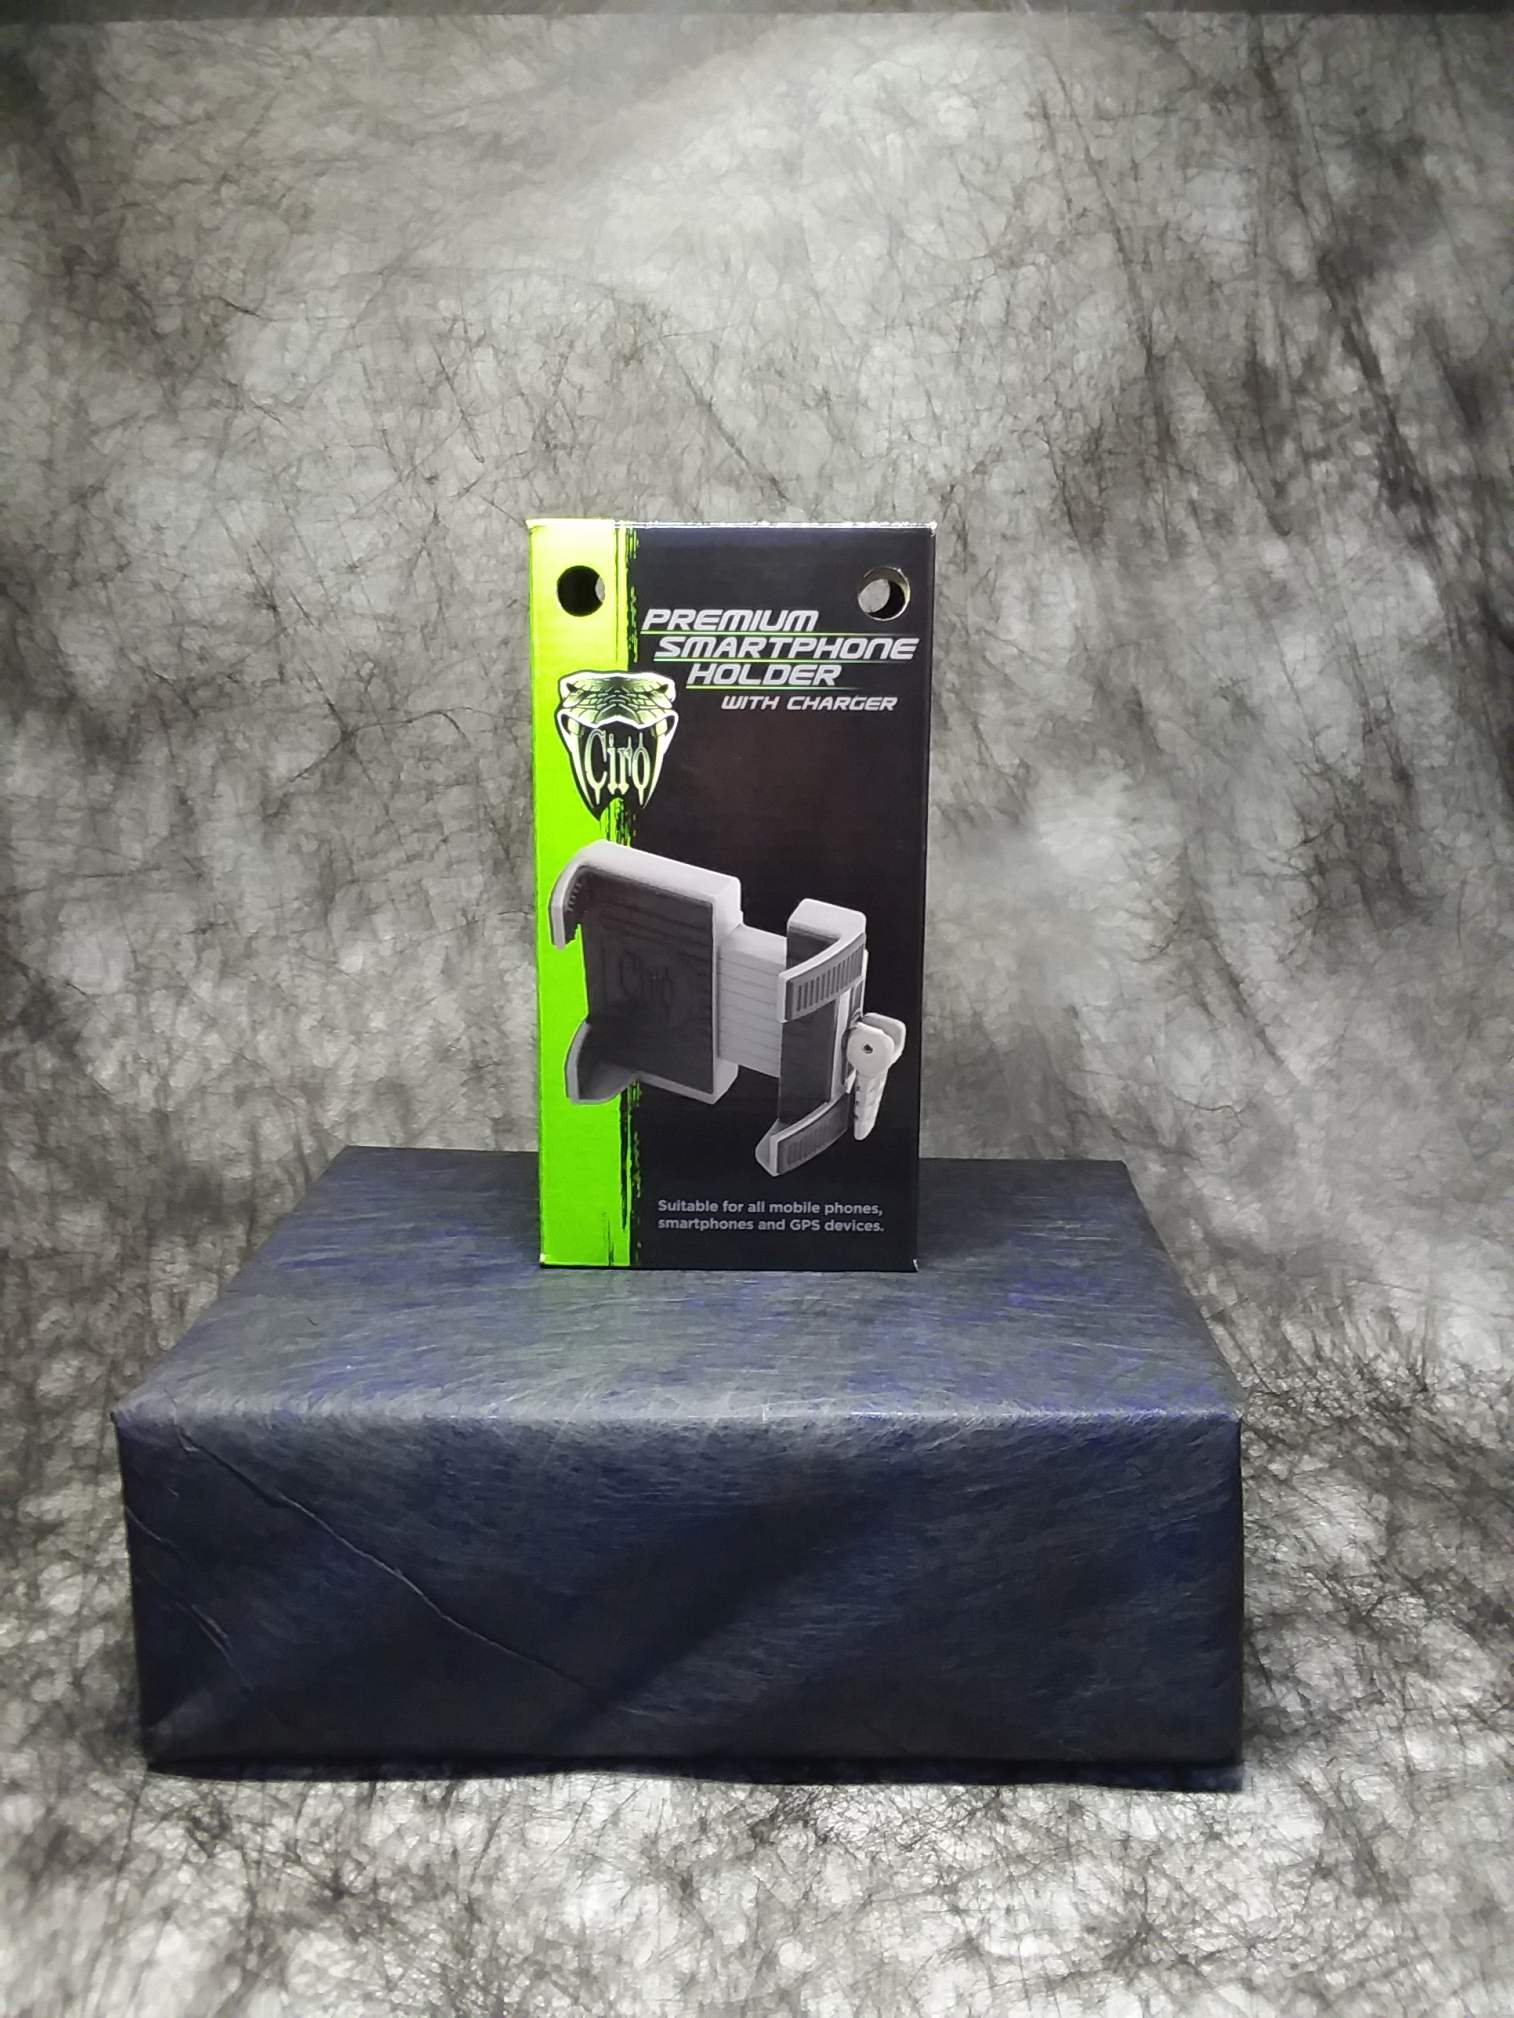 Pictured is the Ciro 3D Premium Smartphone Holder box, black with a green stripe down the left. The Ciro logo and mount appear on the front.